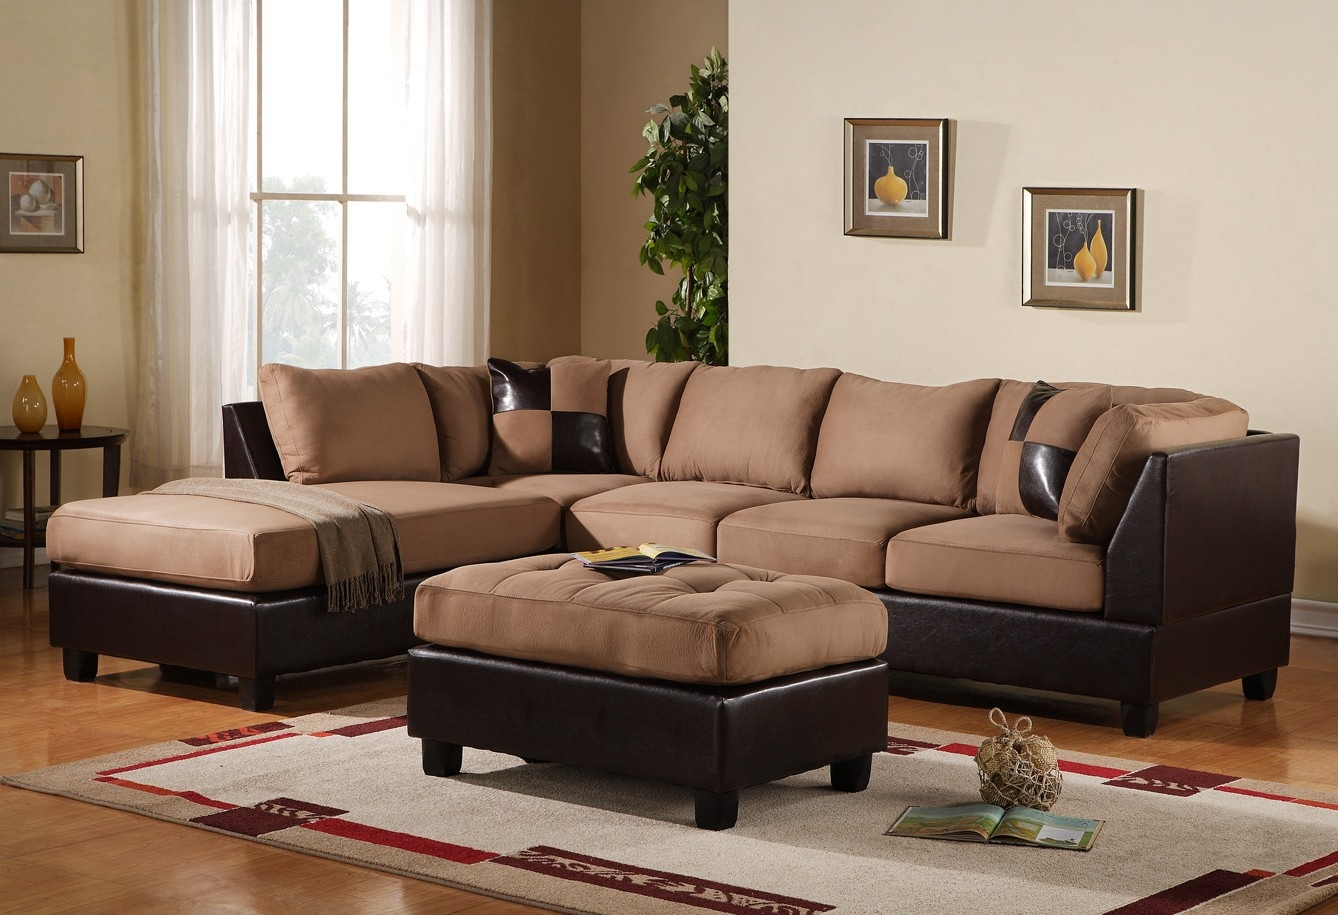 colorful sofa ideas clarke fabric sectional sleeper 15 photos sofas and chairs